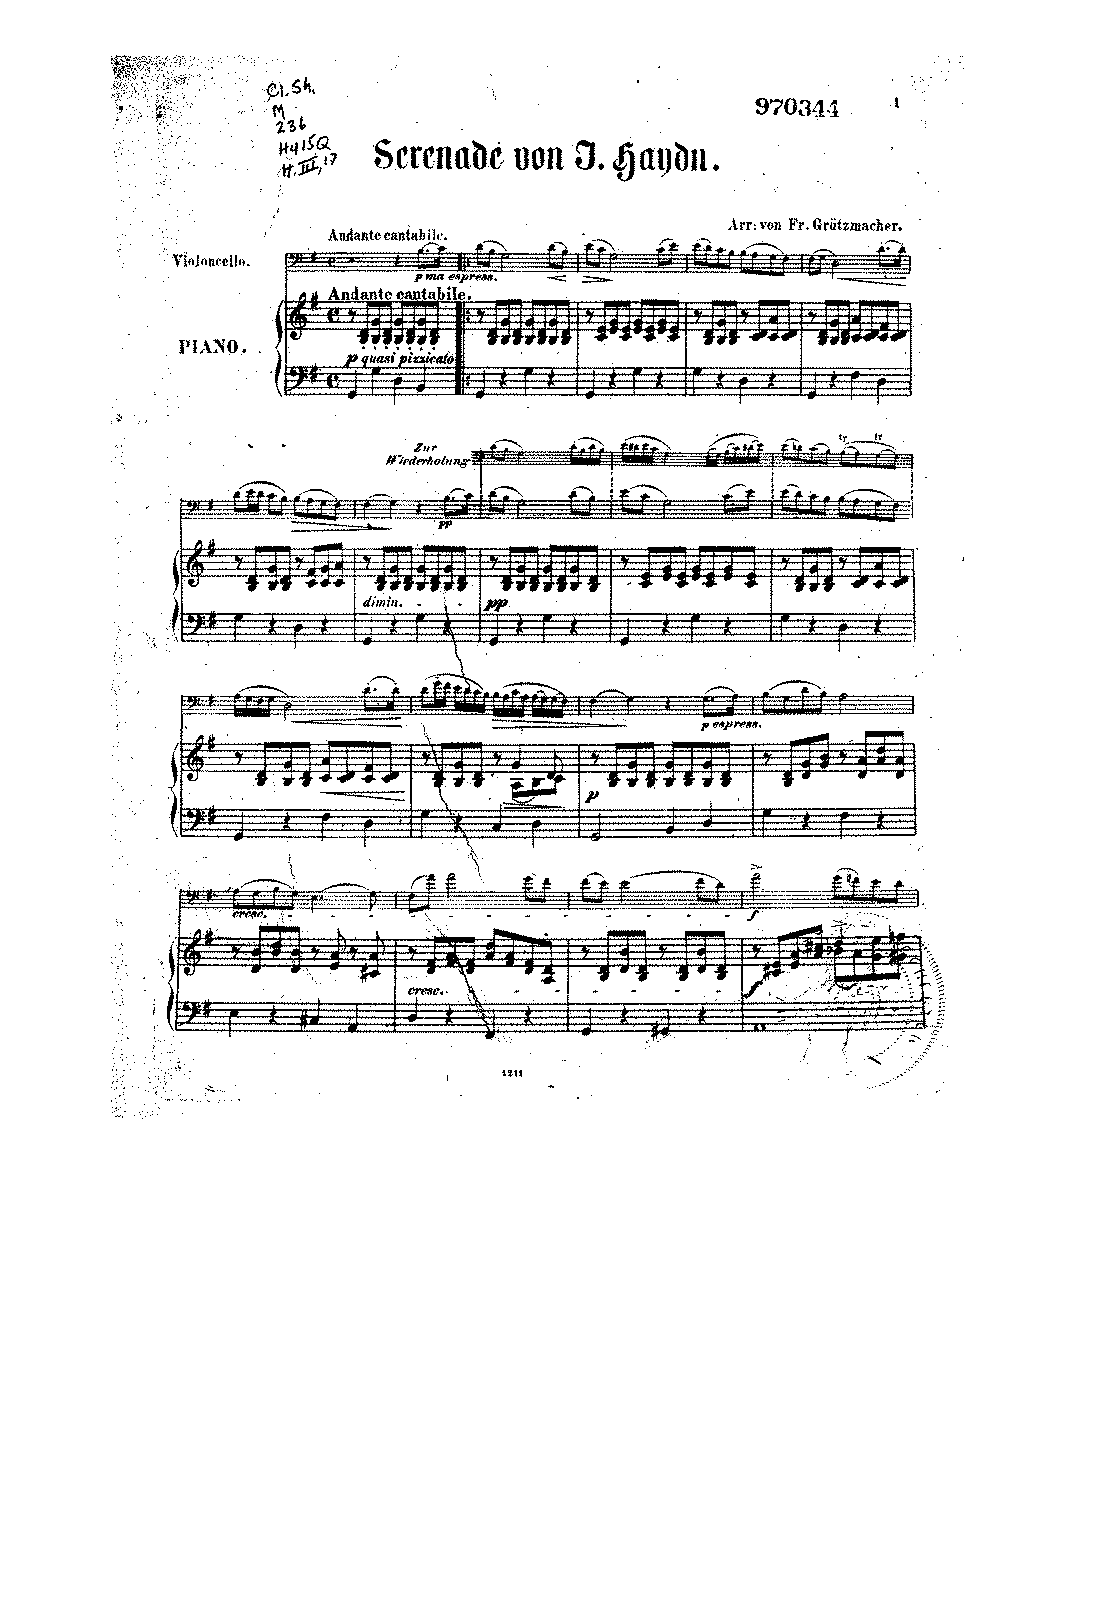 PMLP57559-Haydn - Serenade for Cello and Piano from Quartet Op3 No5 (Grutzmacher) score.pdf